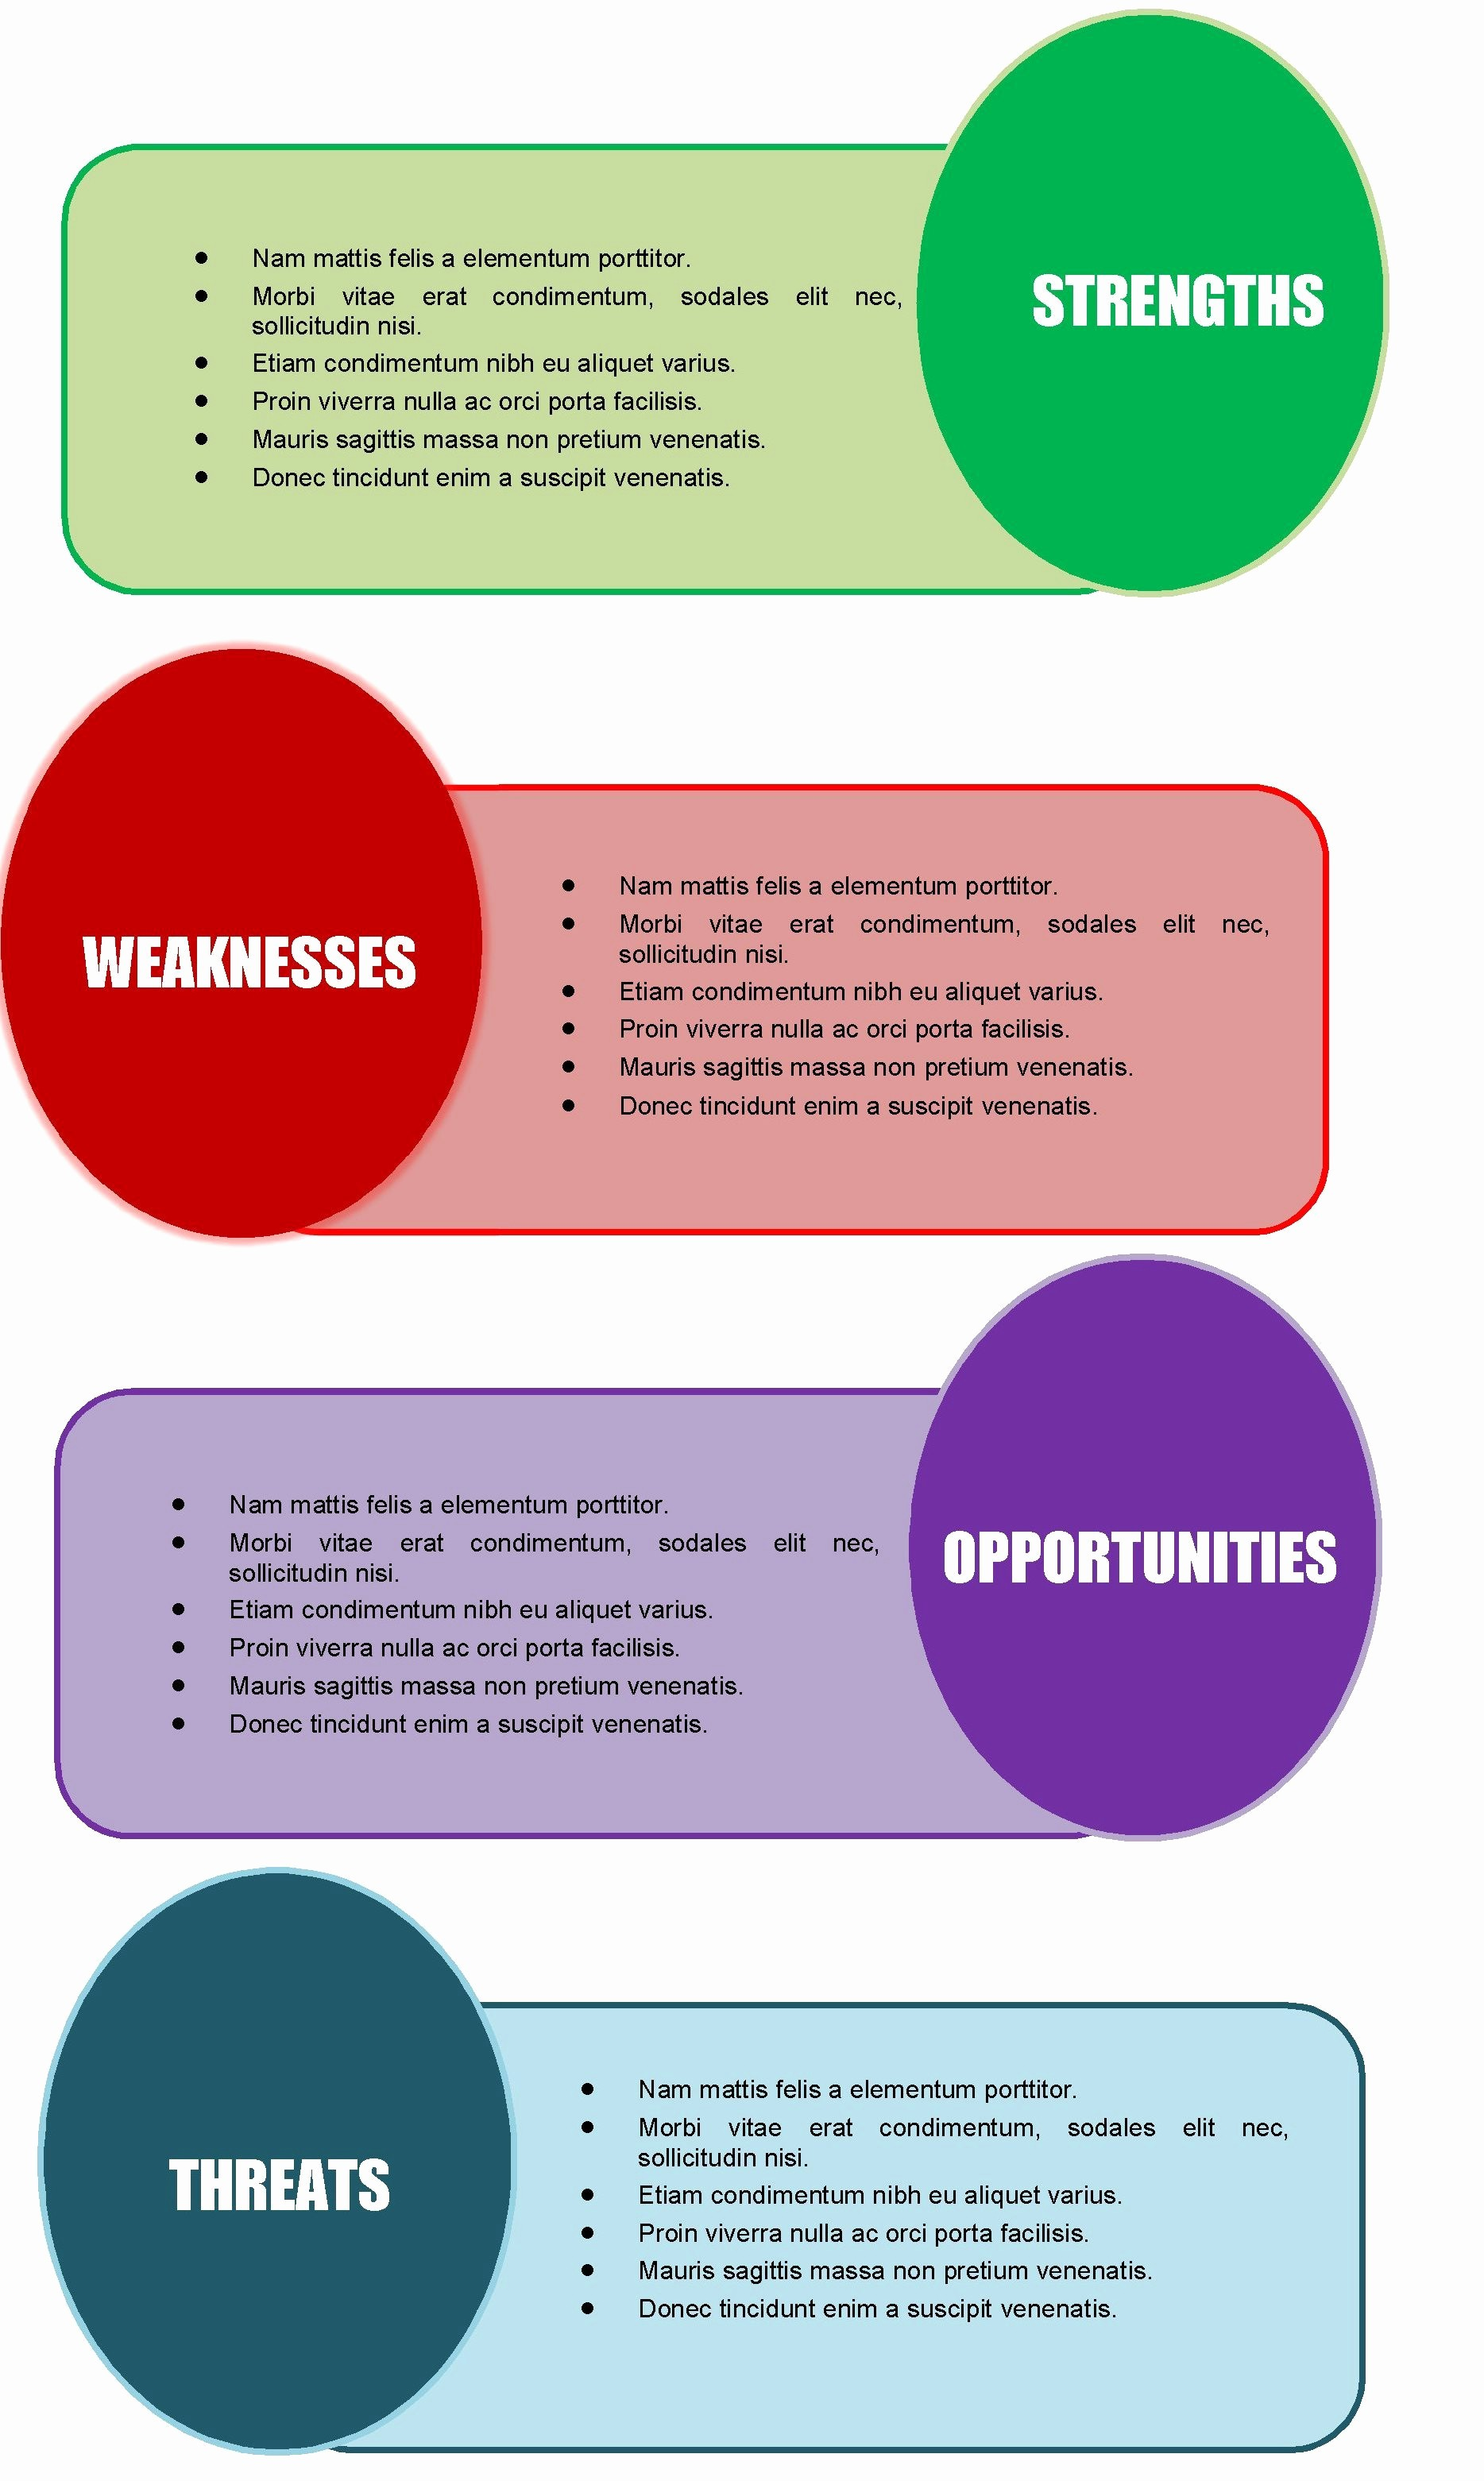 Free Templates for Microsoft Word Luxury 40 Free Swot Analysis Templates In Word Demplates